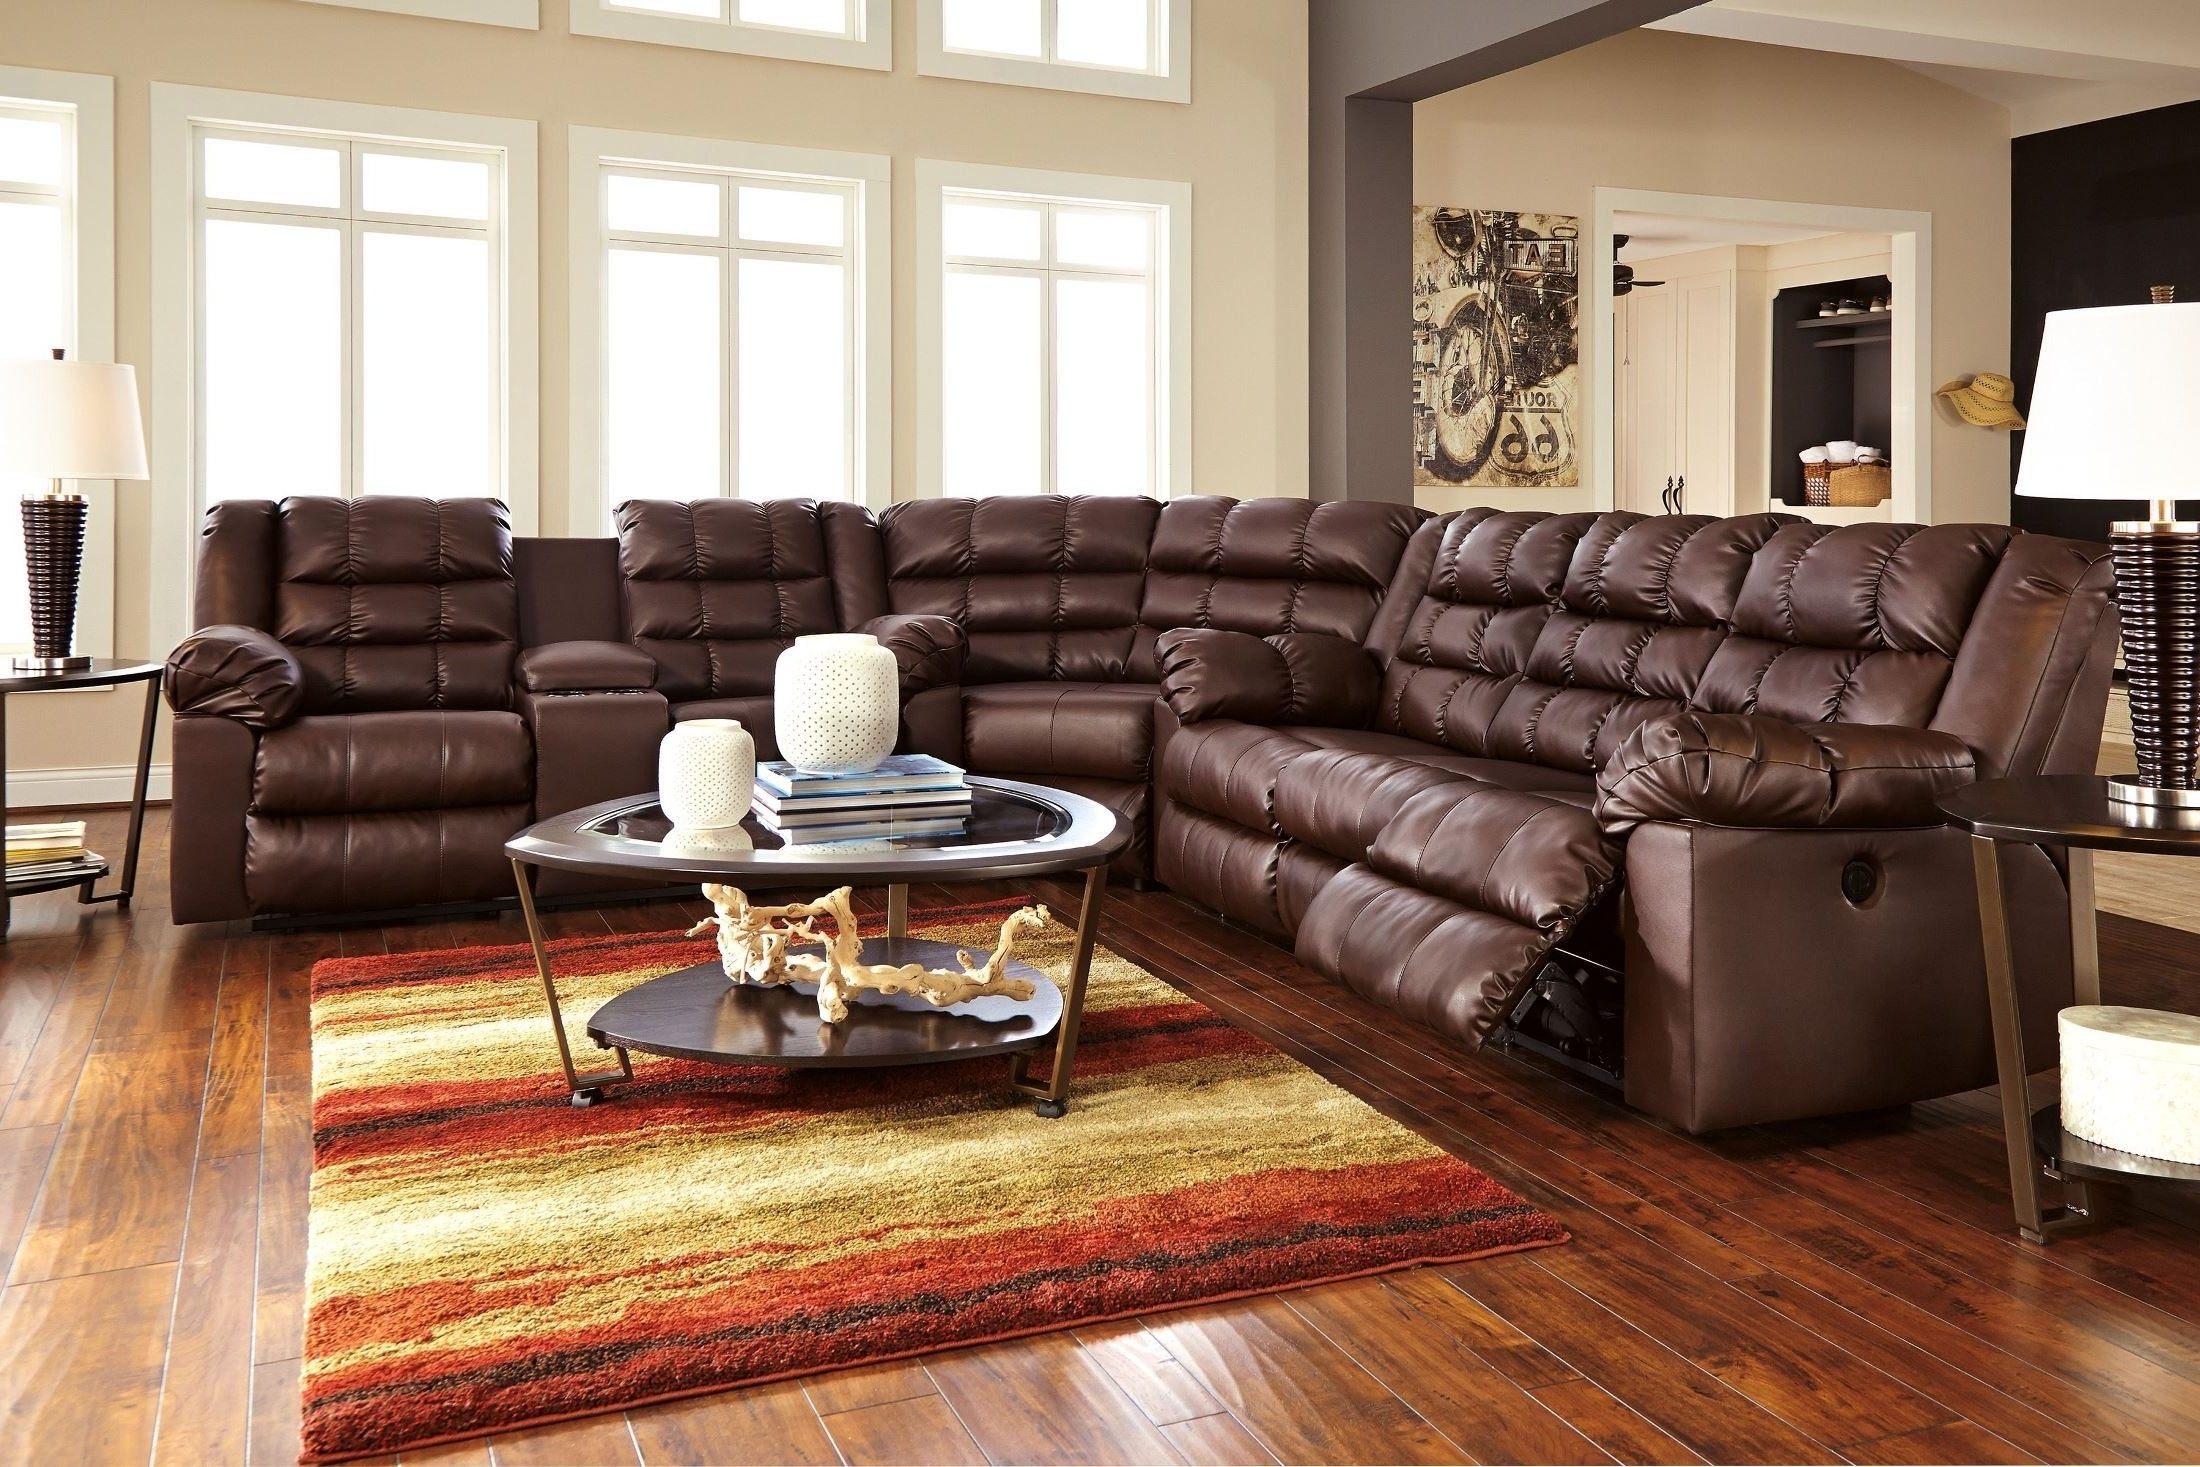 American Freight Sectionals Throughout Trendy Erie Pa Sectional Sofas (View 3 of 15)